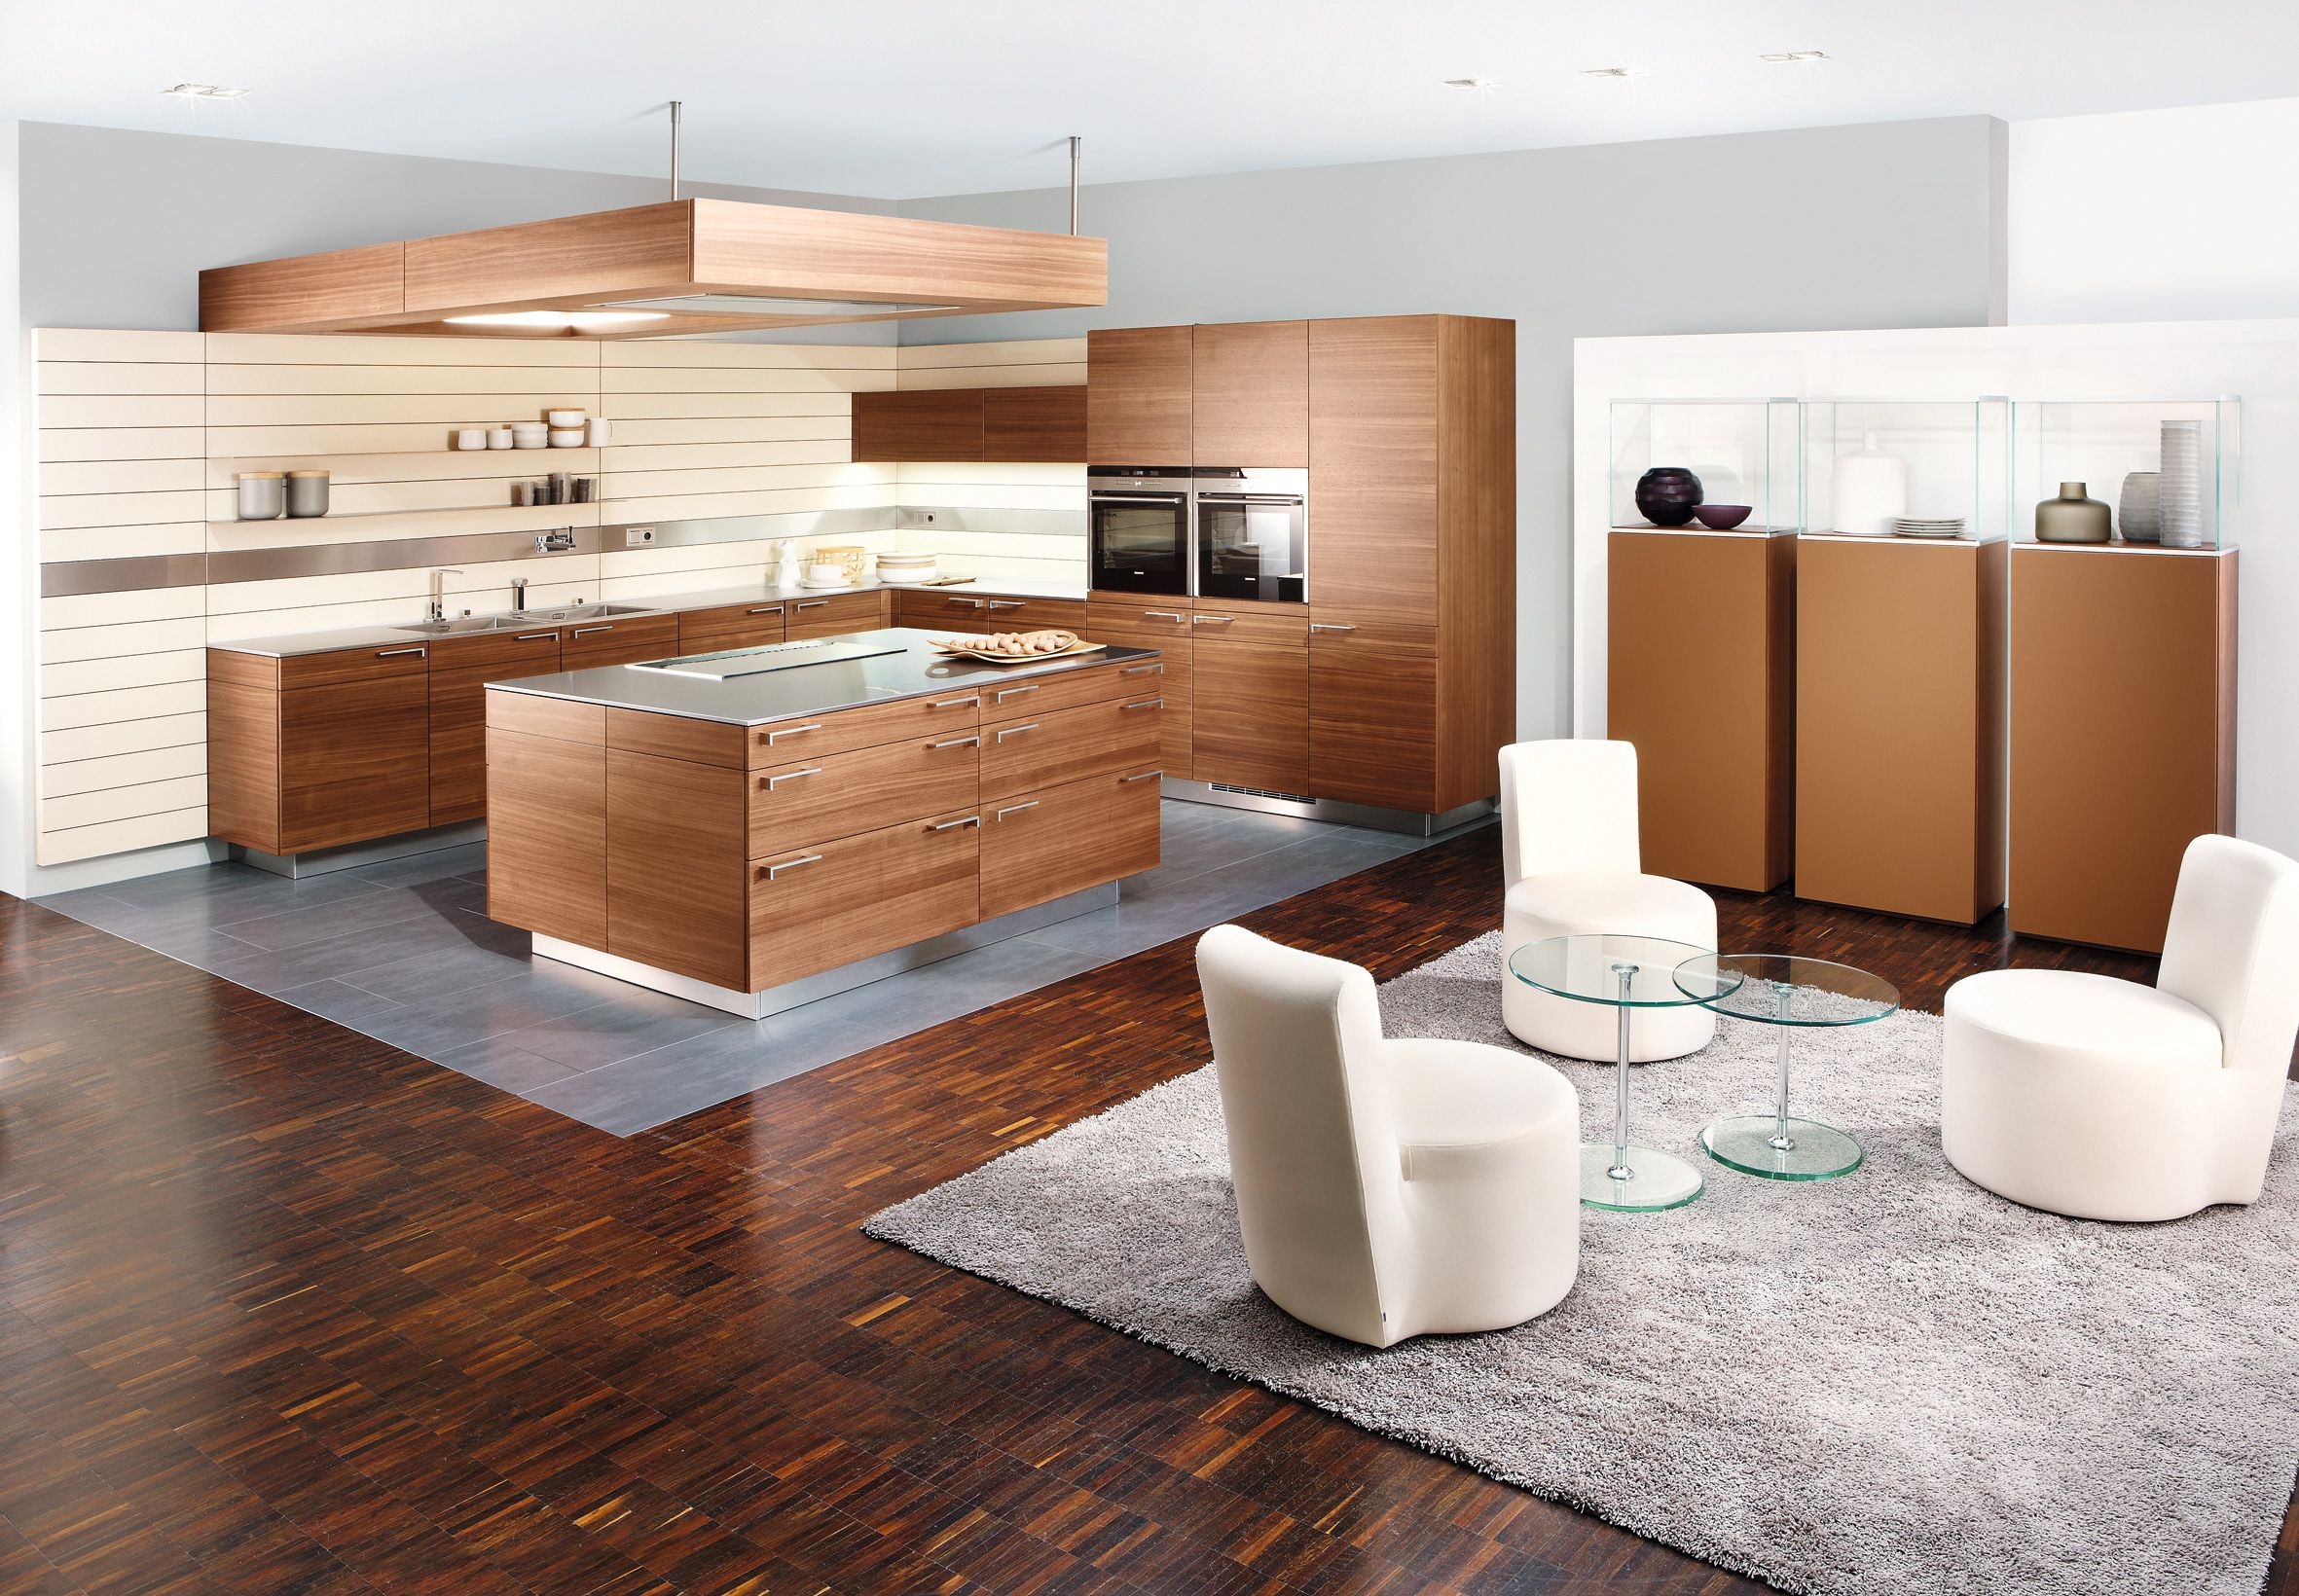 Al al alno kitchen cabinets chicago -  Artesio Kitchen By Poggenpohl In Walnut Finish The Integrated Approach To Kitchen And